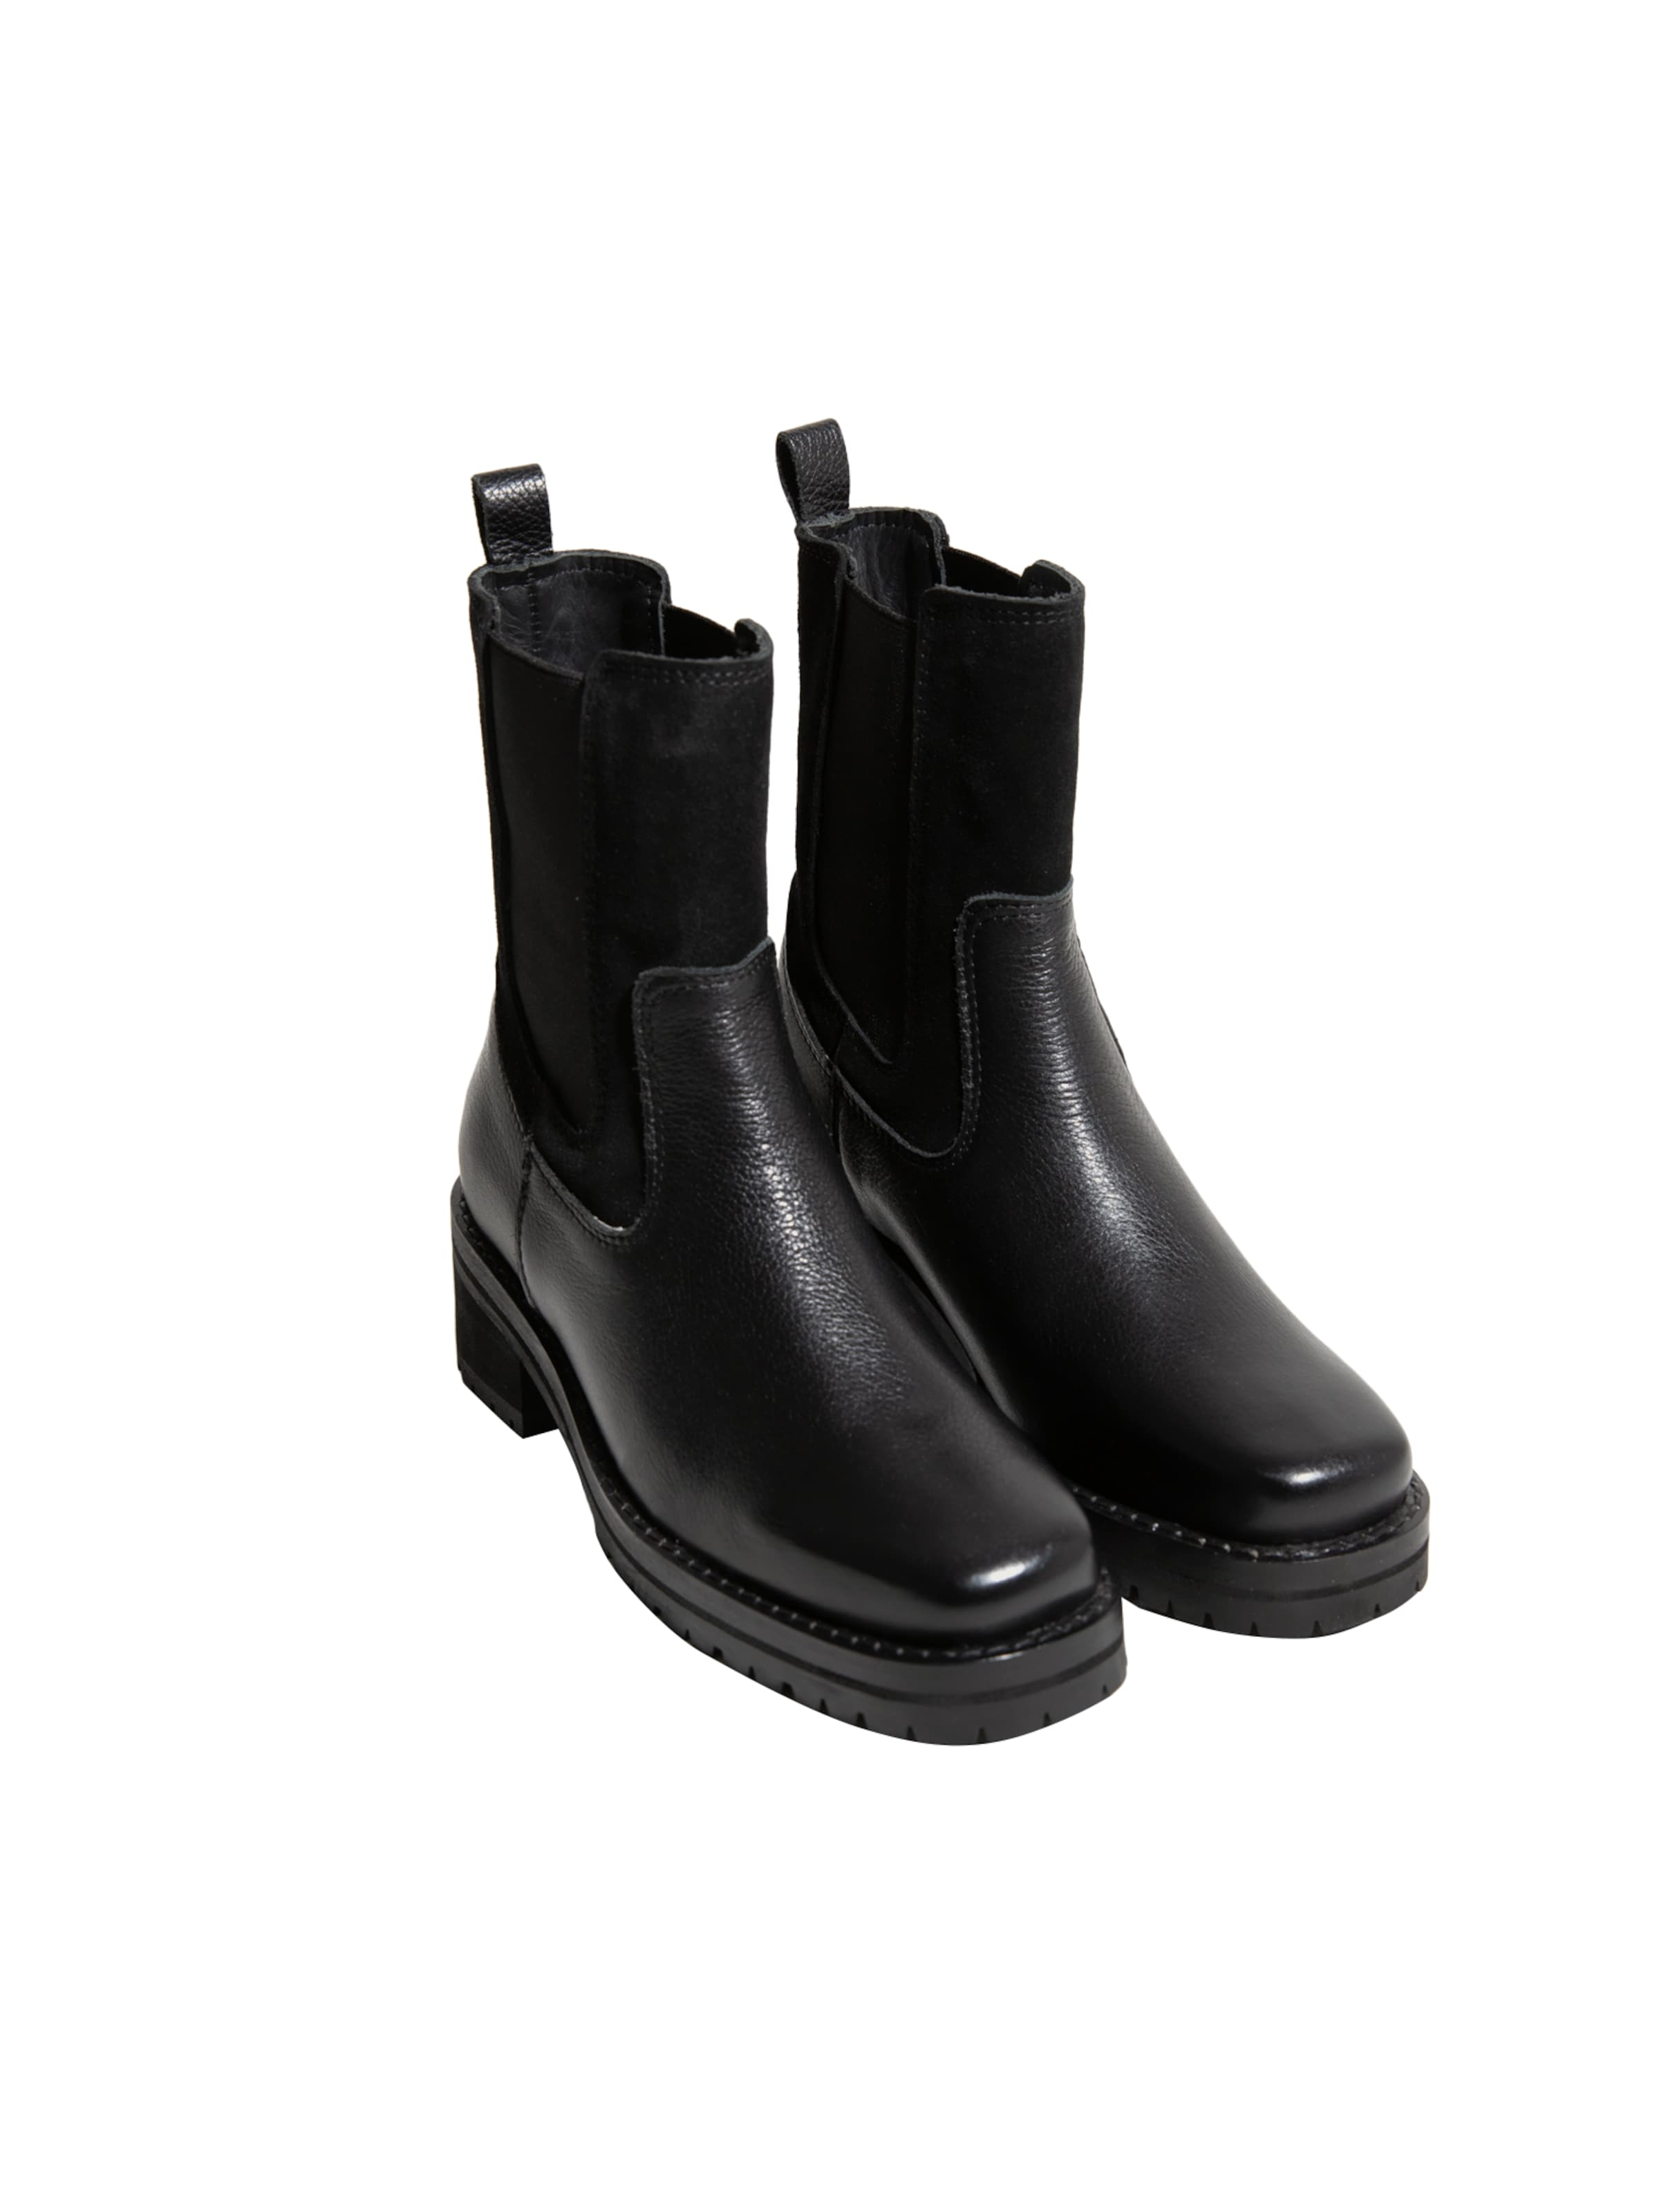 Schwarz Edited 'leilani' Boots Edited In Boots UzjLVGSMqp